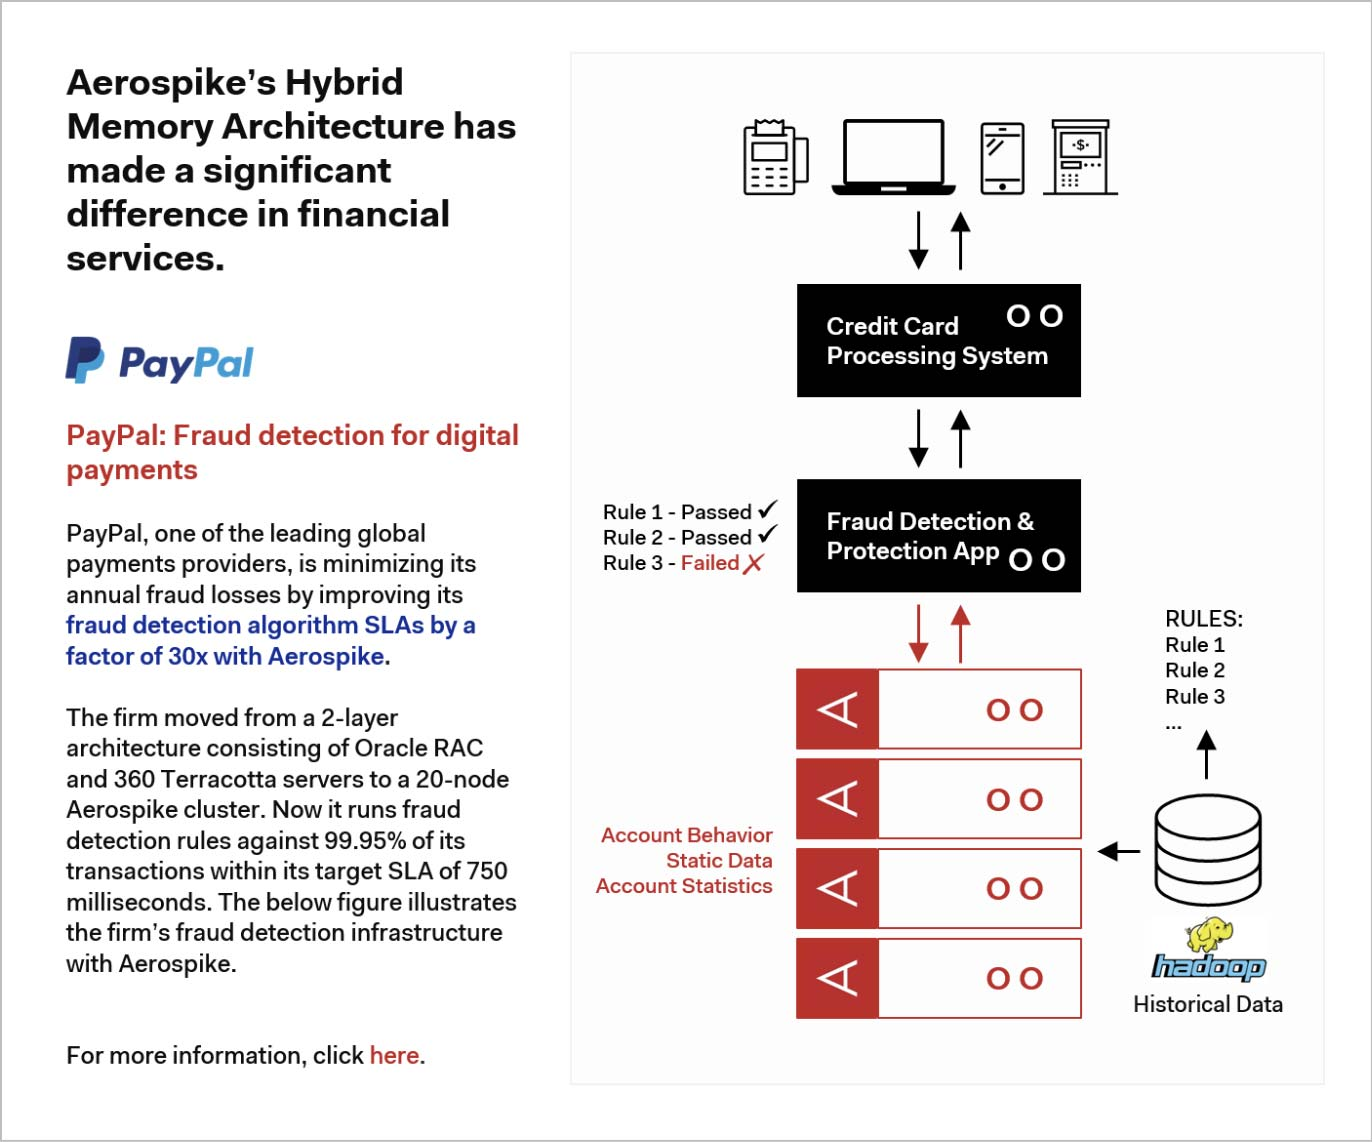 Aerospike's Hybrid Memory Architecture has made a significant differences in financial services.